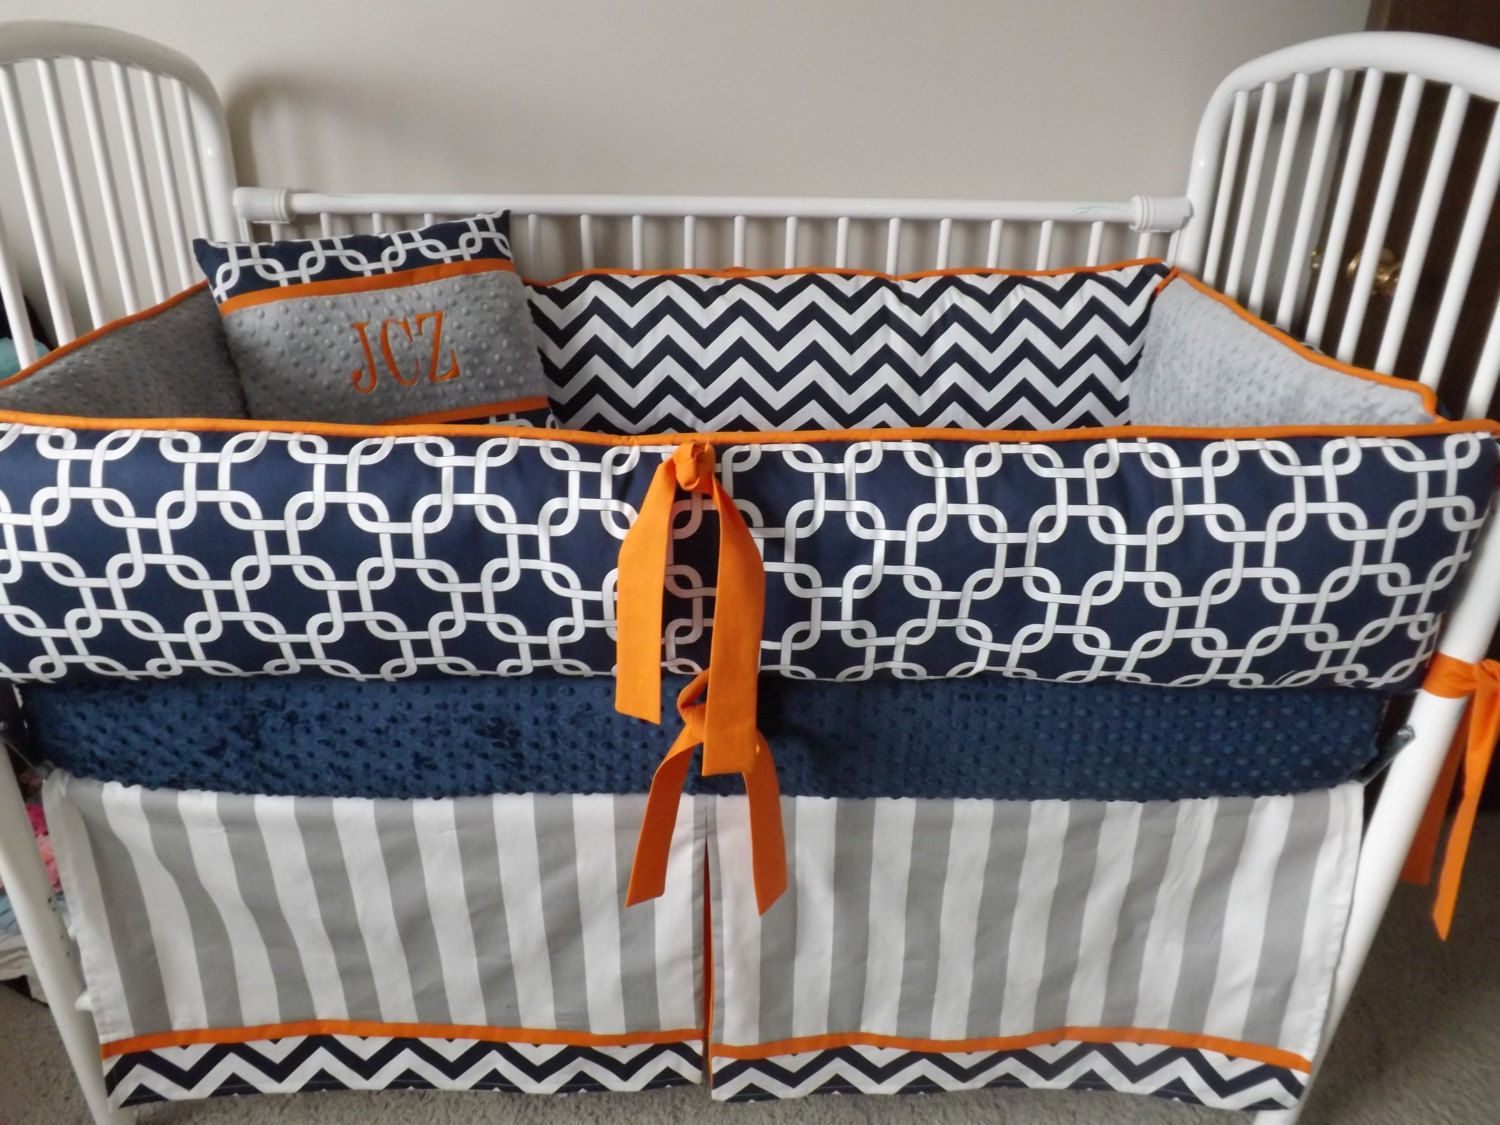 baby boy bedding crib sets navy chevron gray orange bumper boy  - baby boy bedding crib sets navy chevron gray orange bumper boy deposit downpayment only